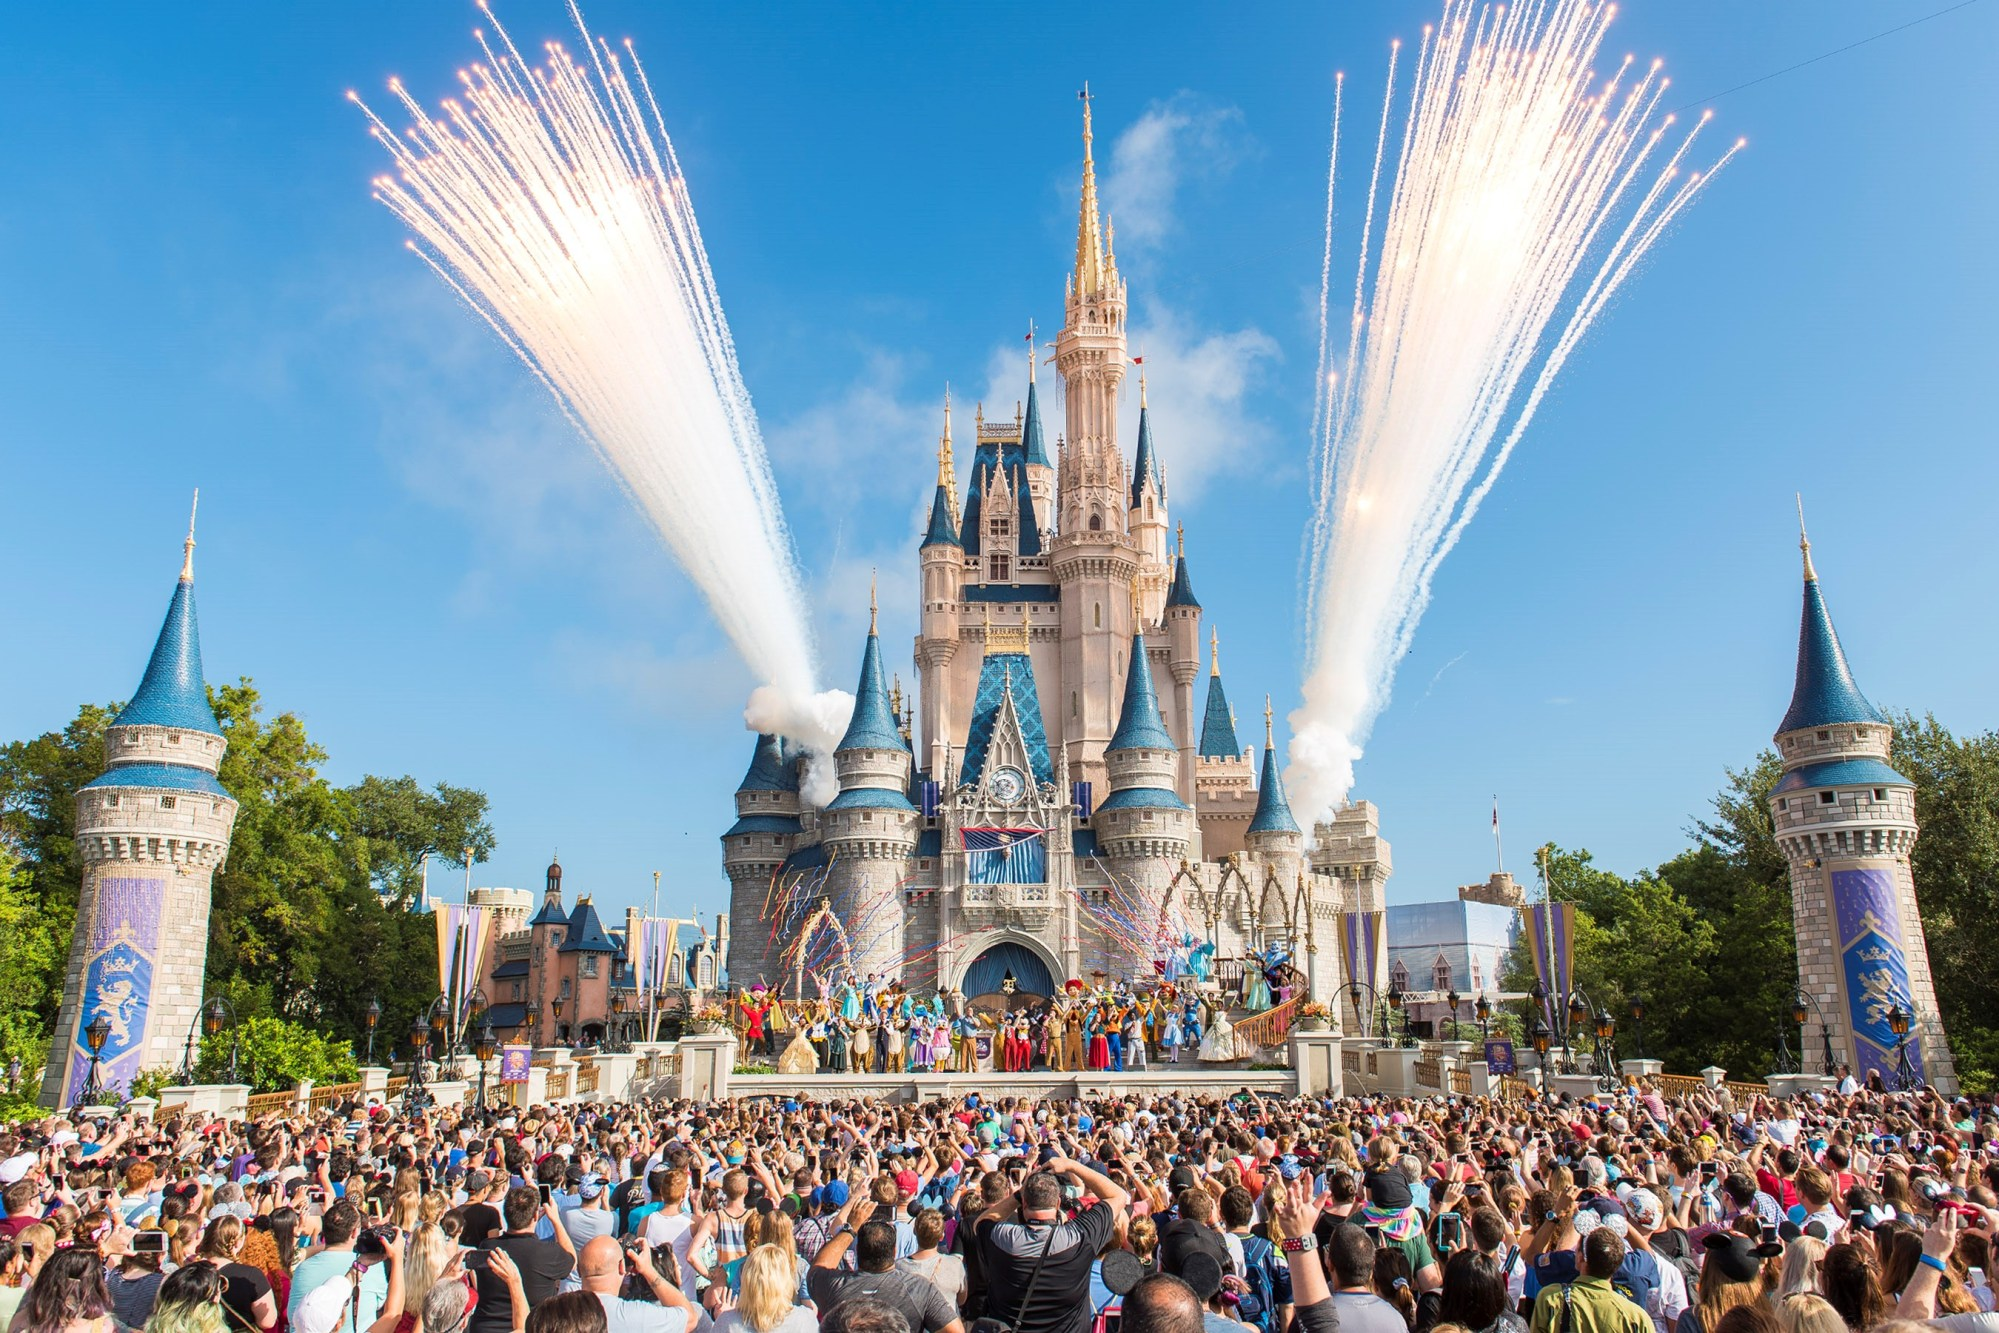 Walt Disney World Resort marked its 45th anniversary on October 1, 2016 in Lake Buena Vista, Florida. (Credit: Jacqueline Nell/Disneyland Resort via Getty Images)